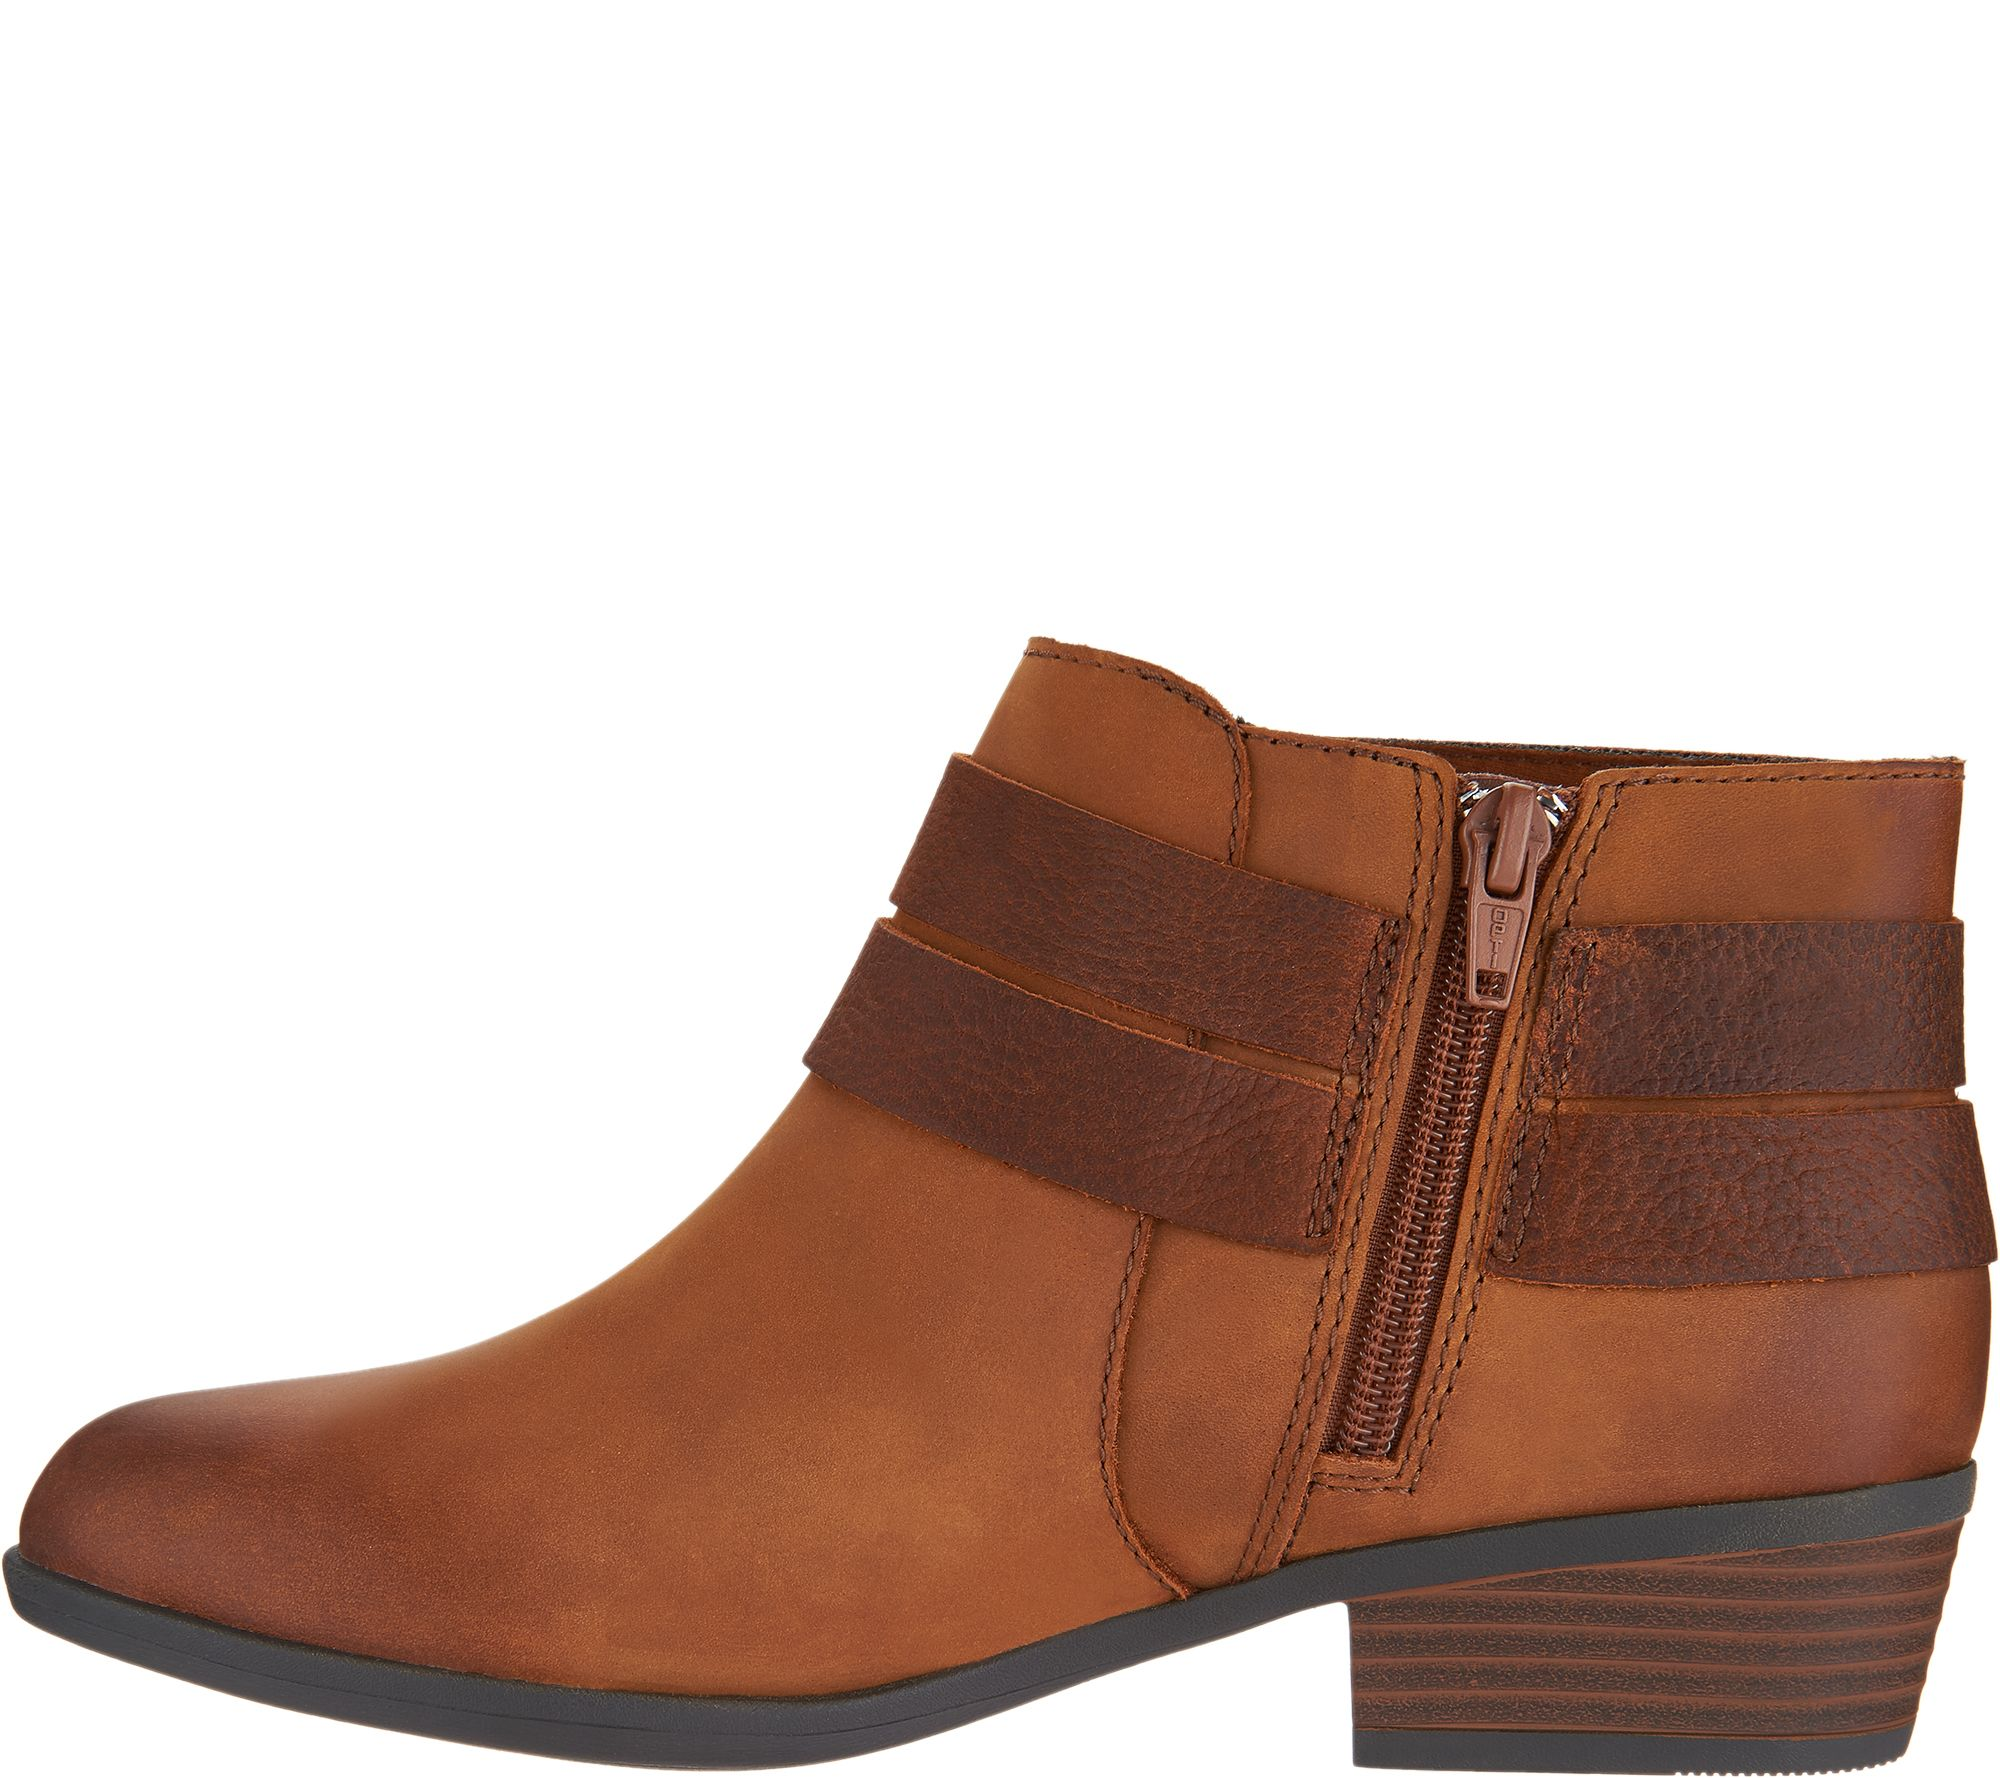 eeaec203 Clarks Collection Leather Ankle Boots - Addiy Cora — QVC.com